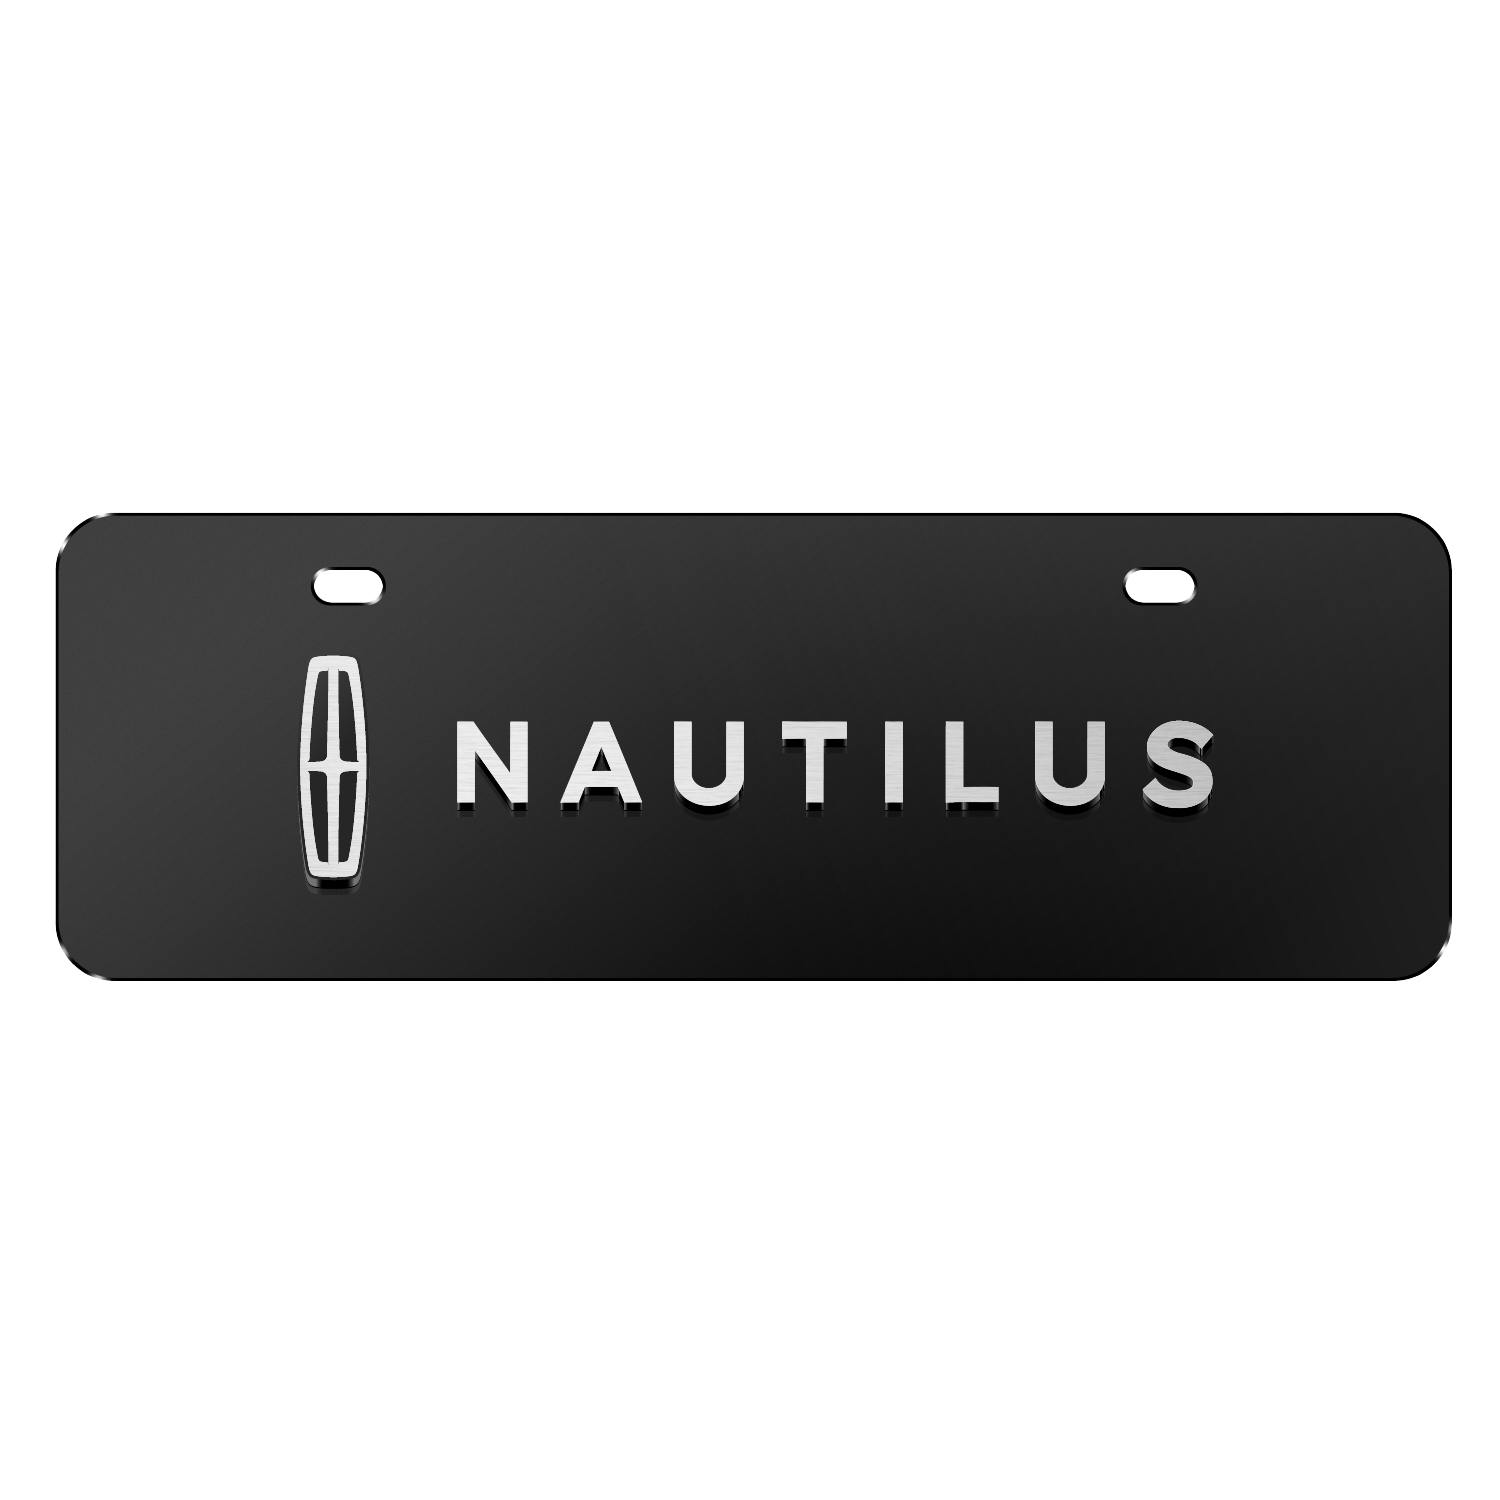 """Lincoln Nautilus 3D Logo on Black 12""""x4"""" Half-Size Stainless Steel License Plate"""